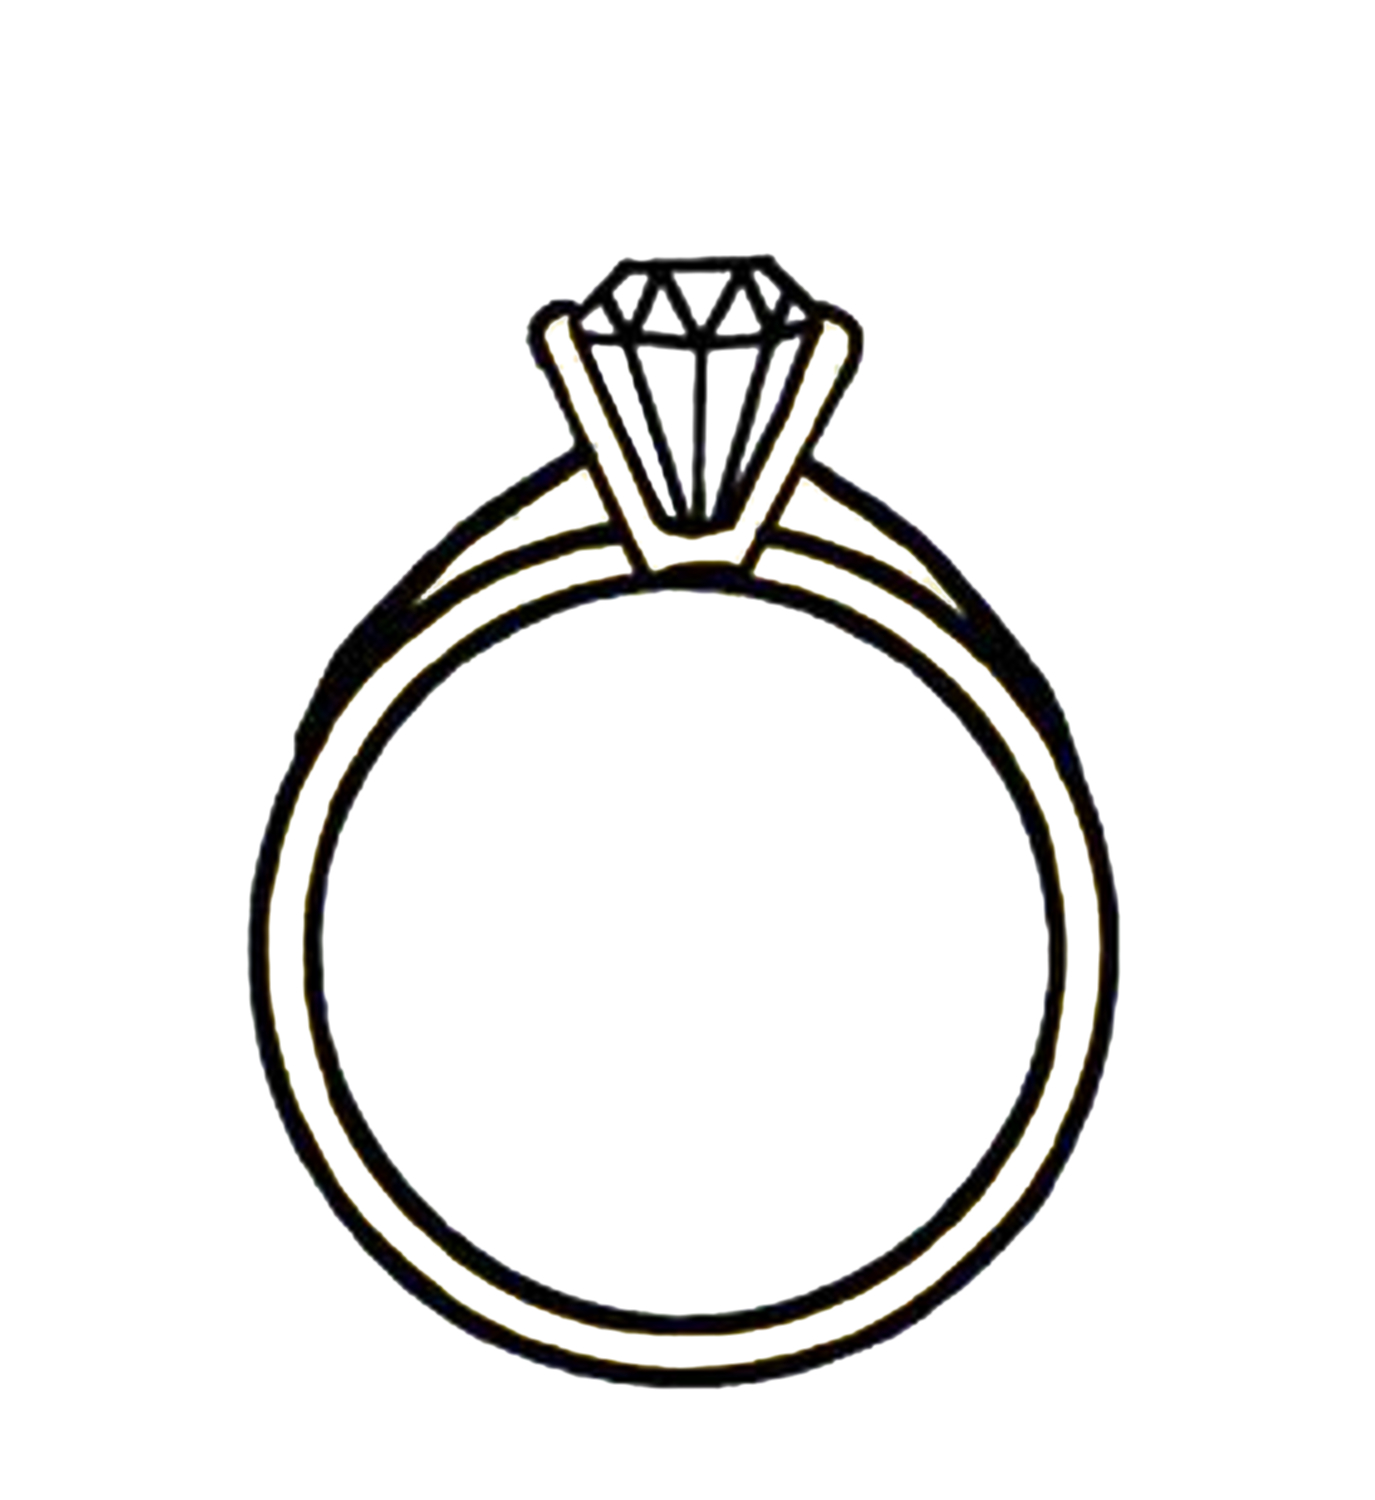 Ring Clipart Black And White-ring clipart black and white-6